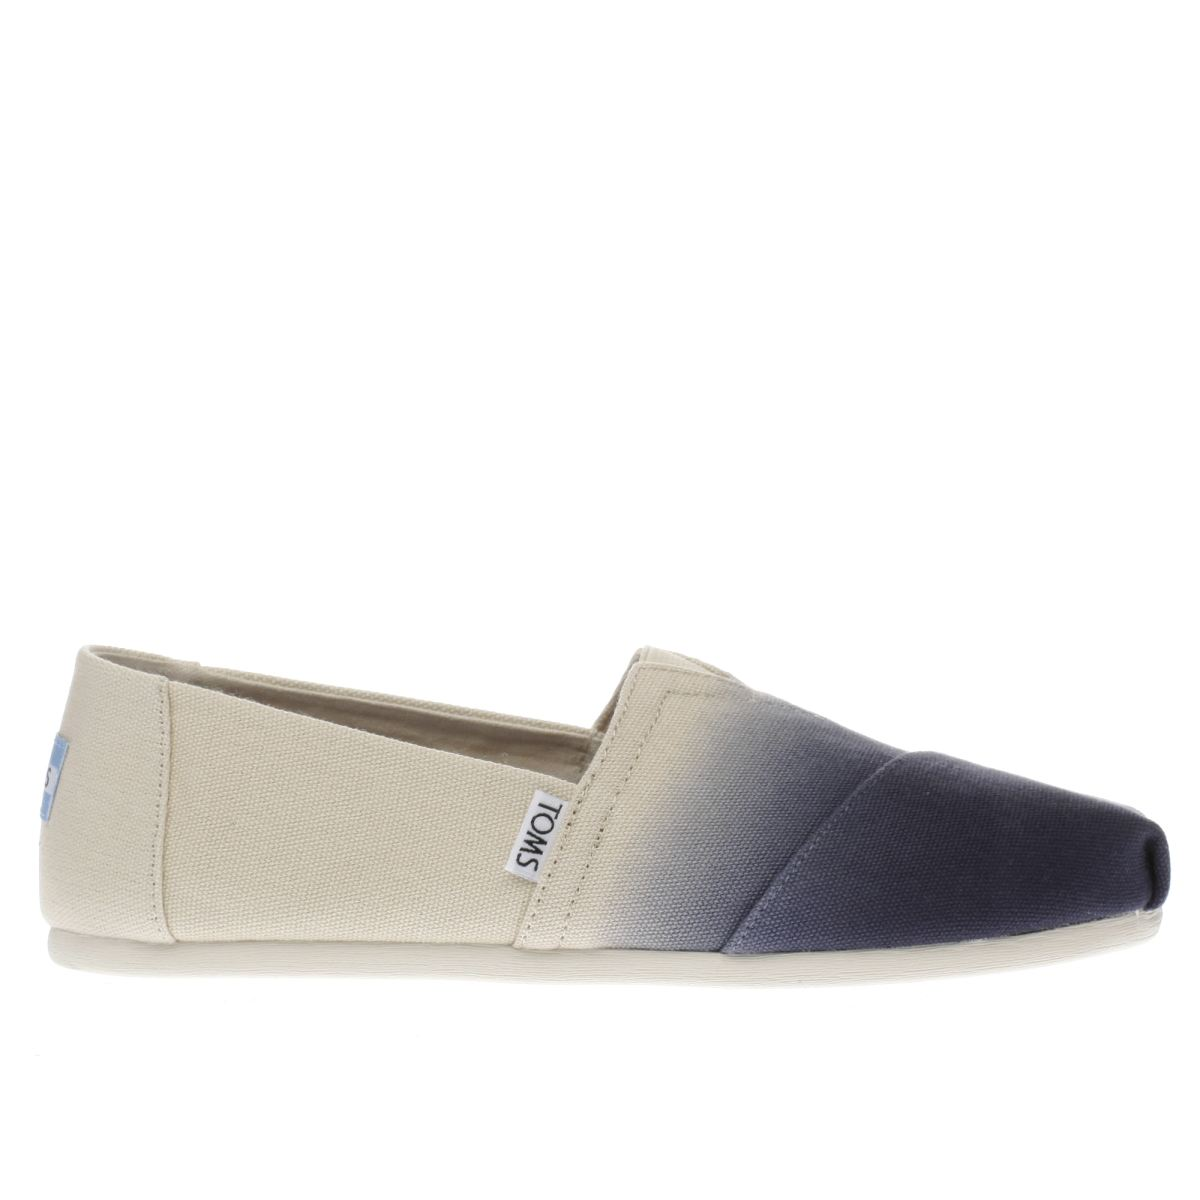 toms navy & stone classic dip dye flat shoes